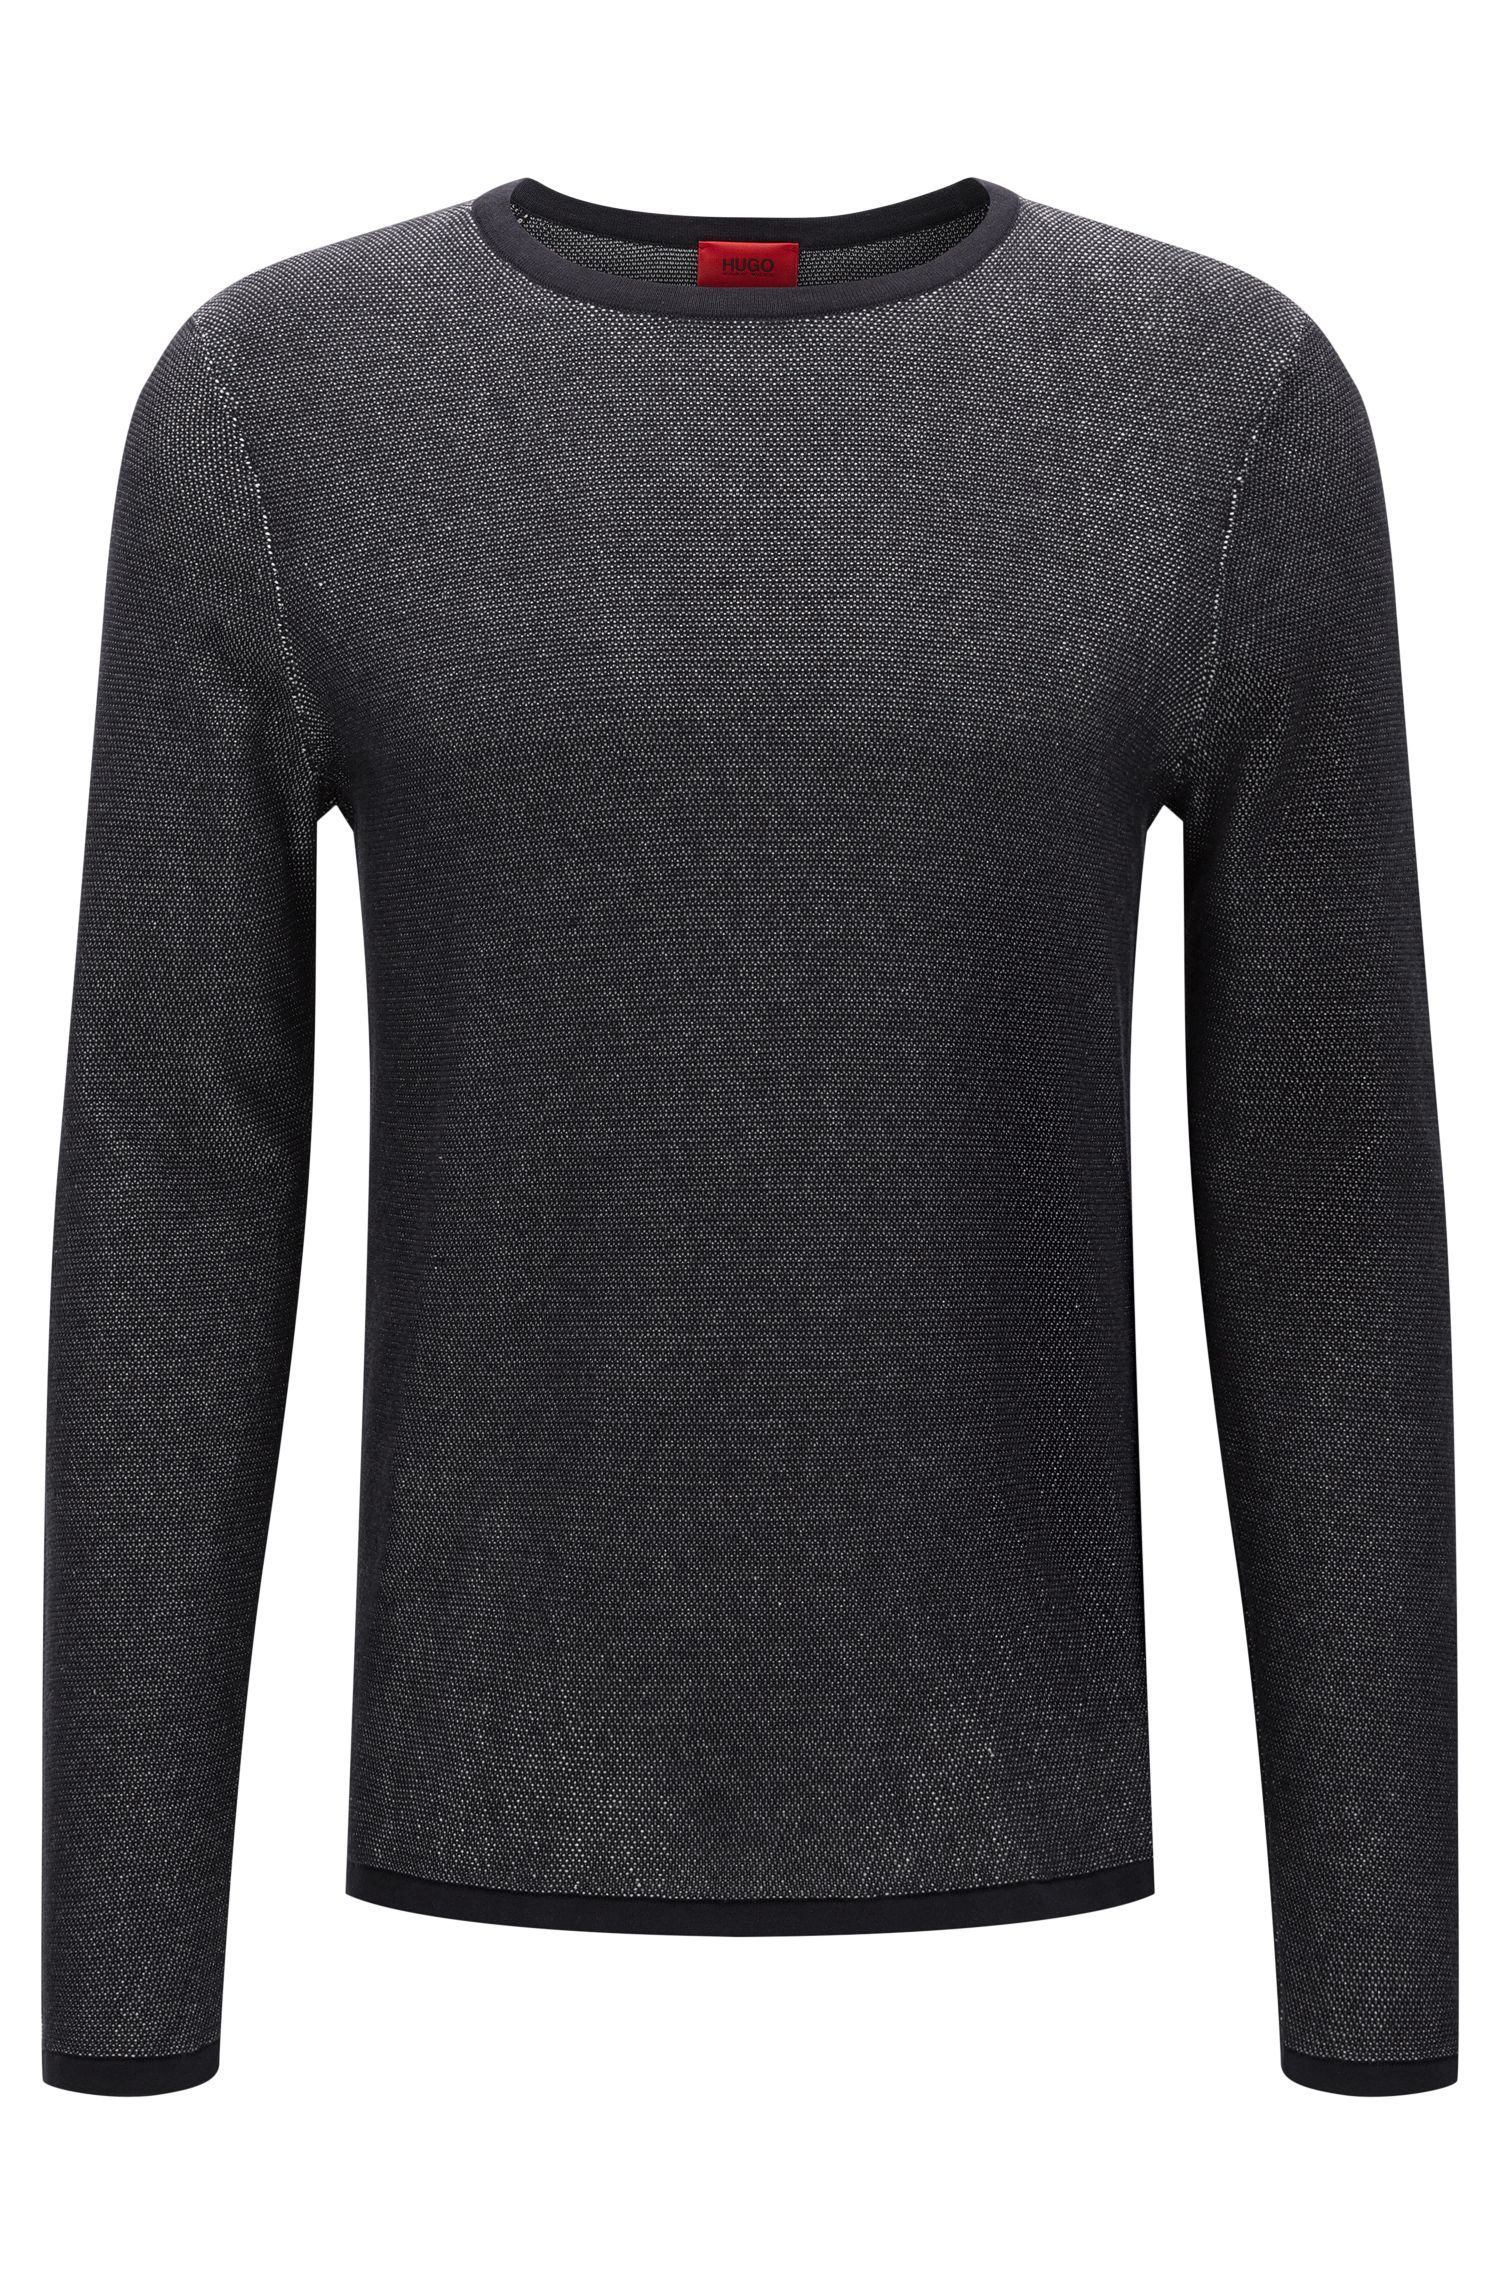 Relaxed-Fit Pullover aus zweifarbiger Baumwolle